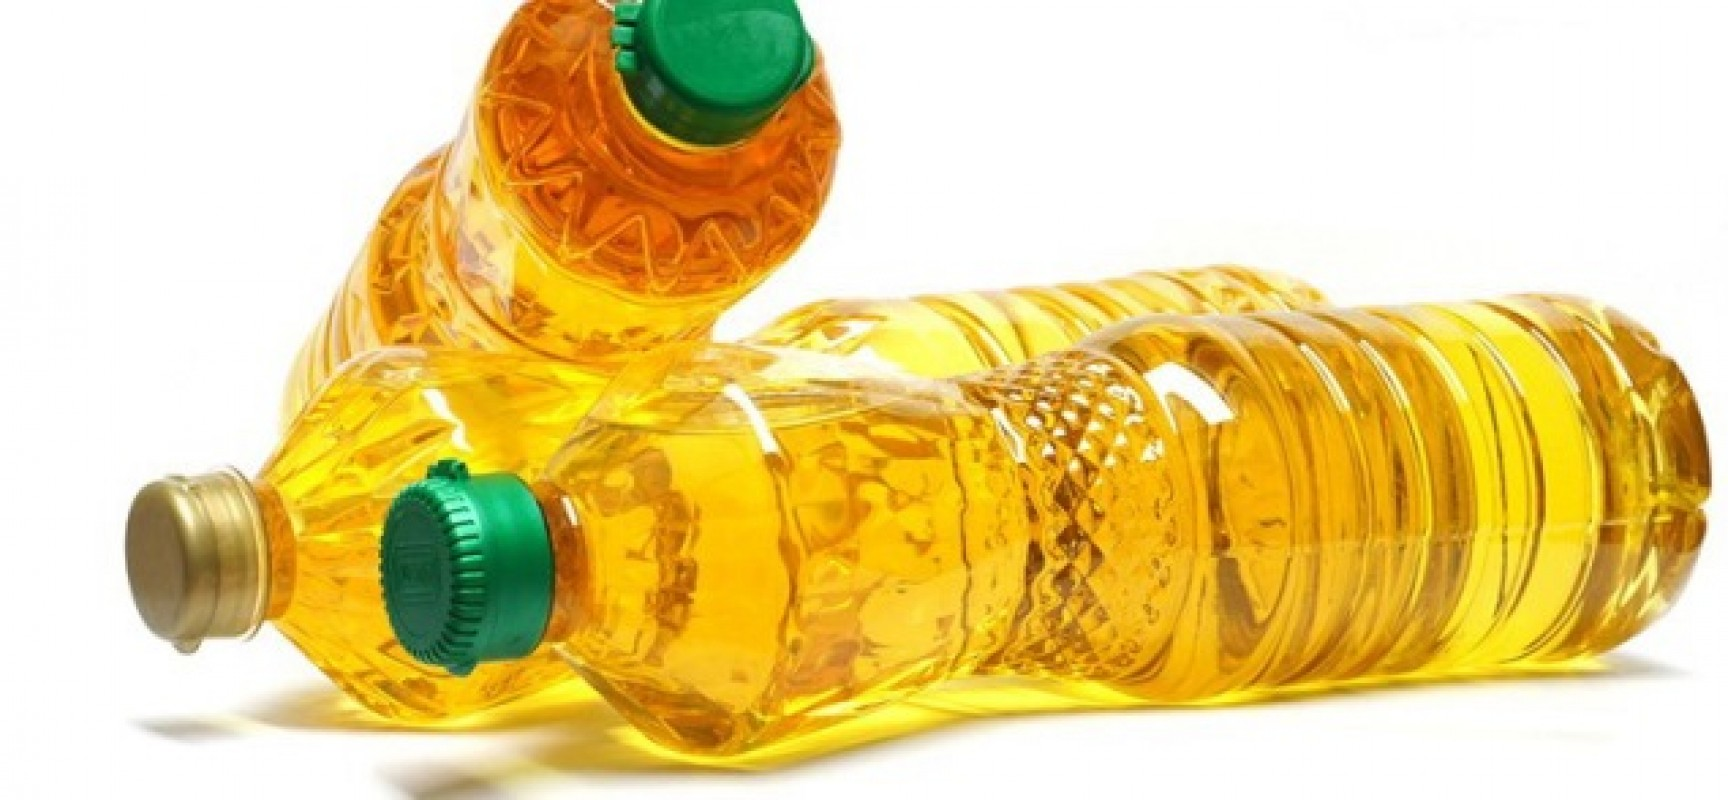 Why Vegetable Oils Are Not Good For Your Health?